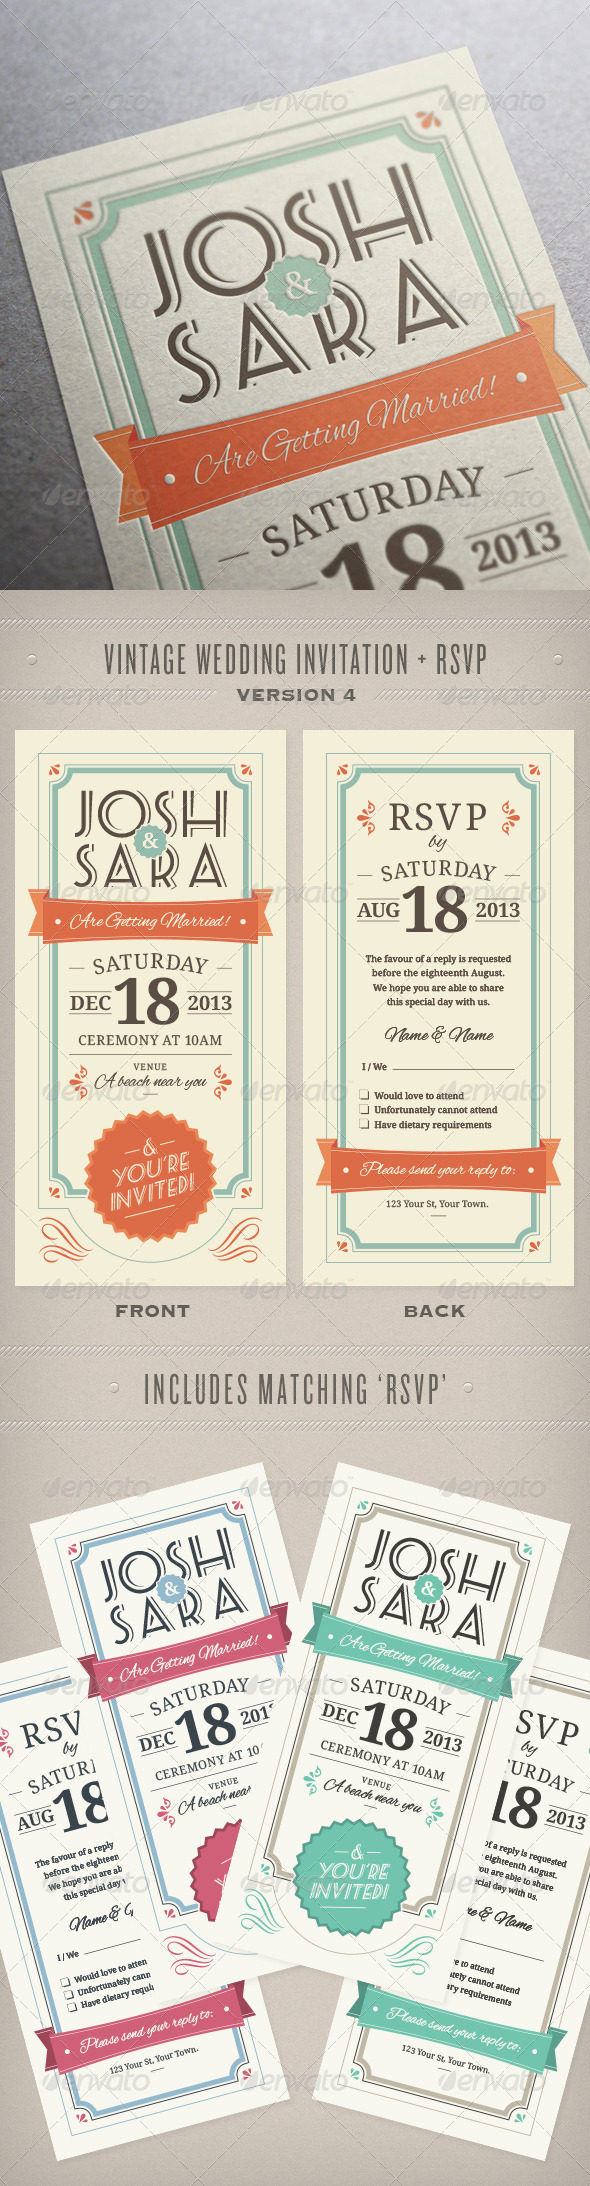 Wedding Invitation & RSVP - Weddings Cards & Invites